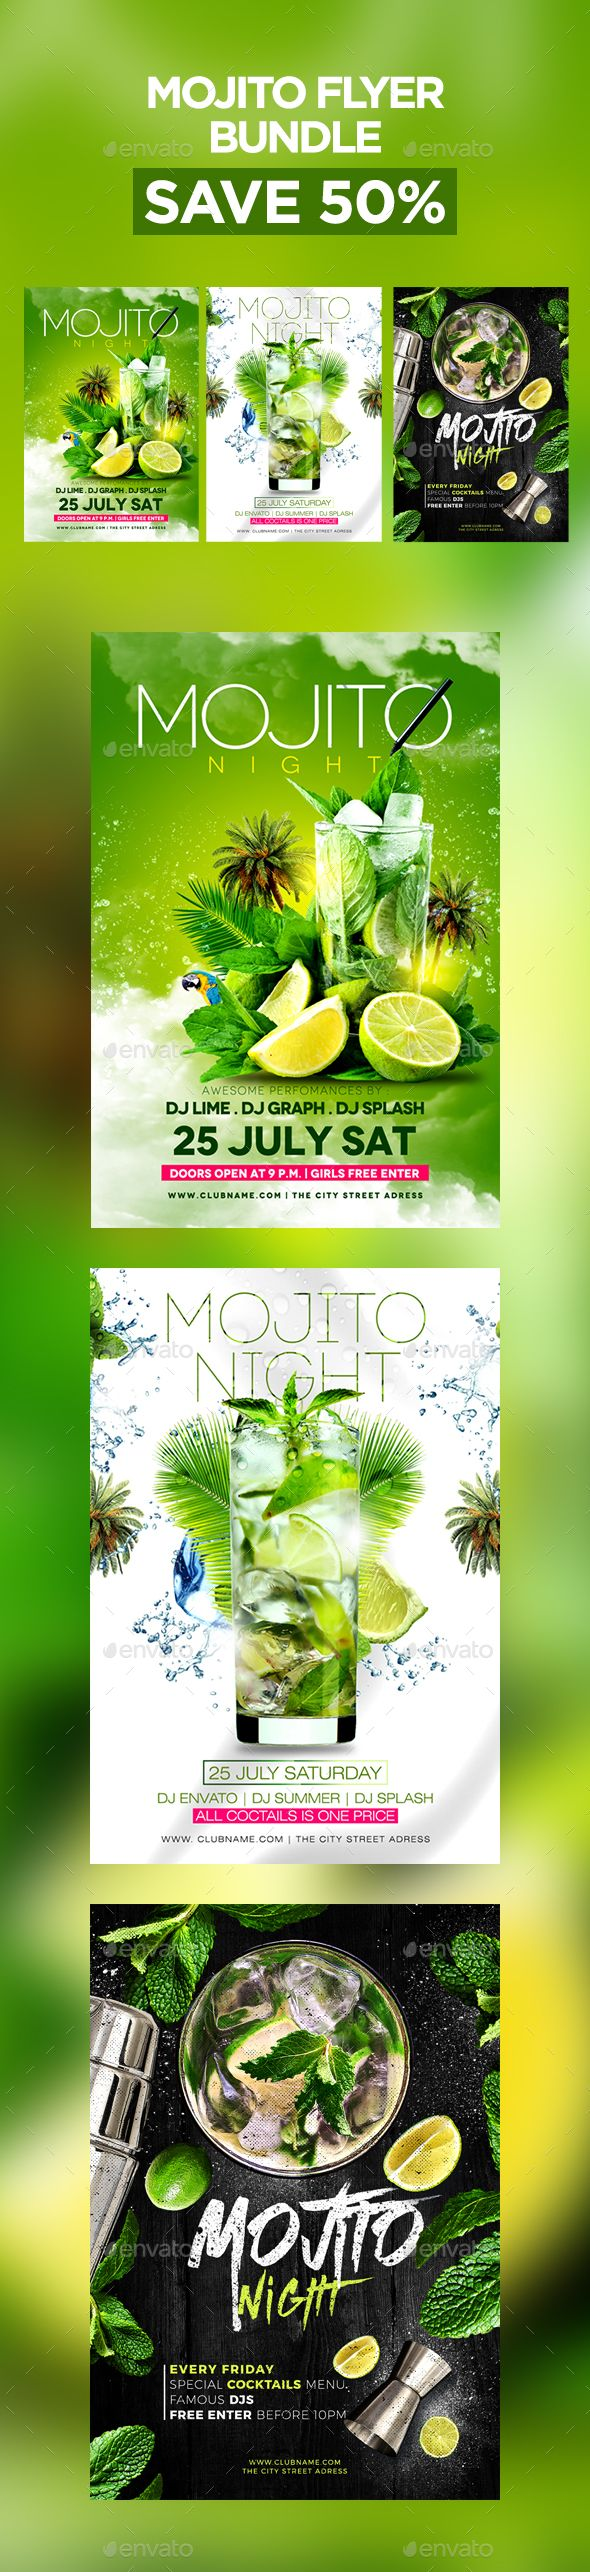 Mojito Flyer Template PSD Bundle